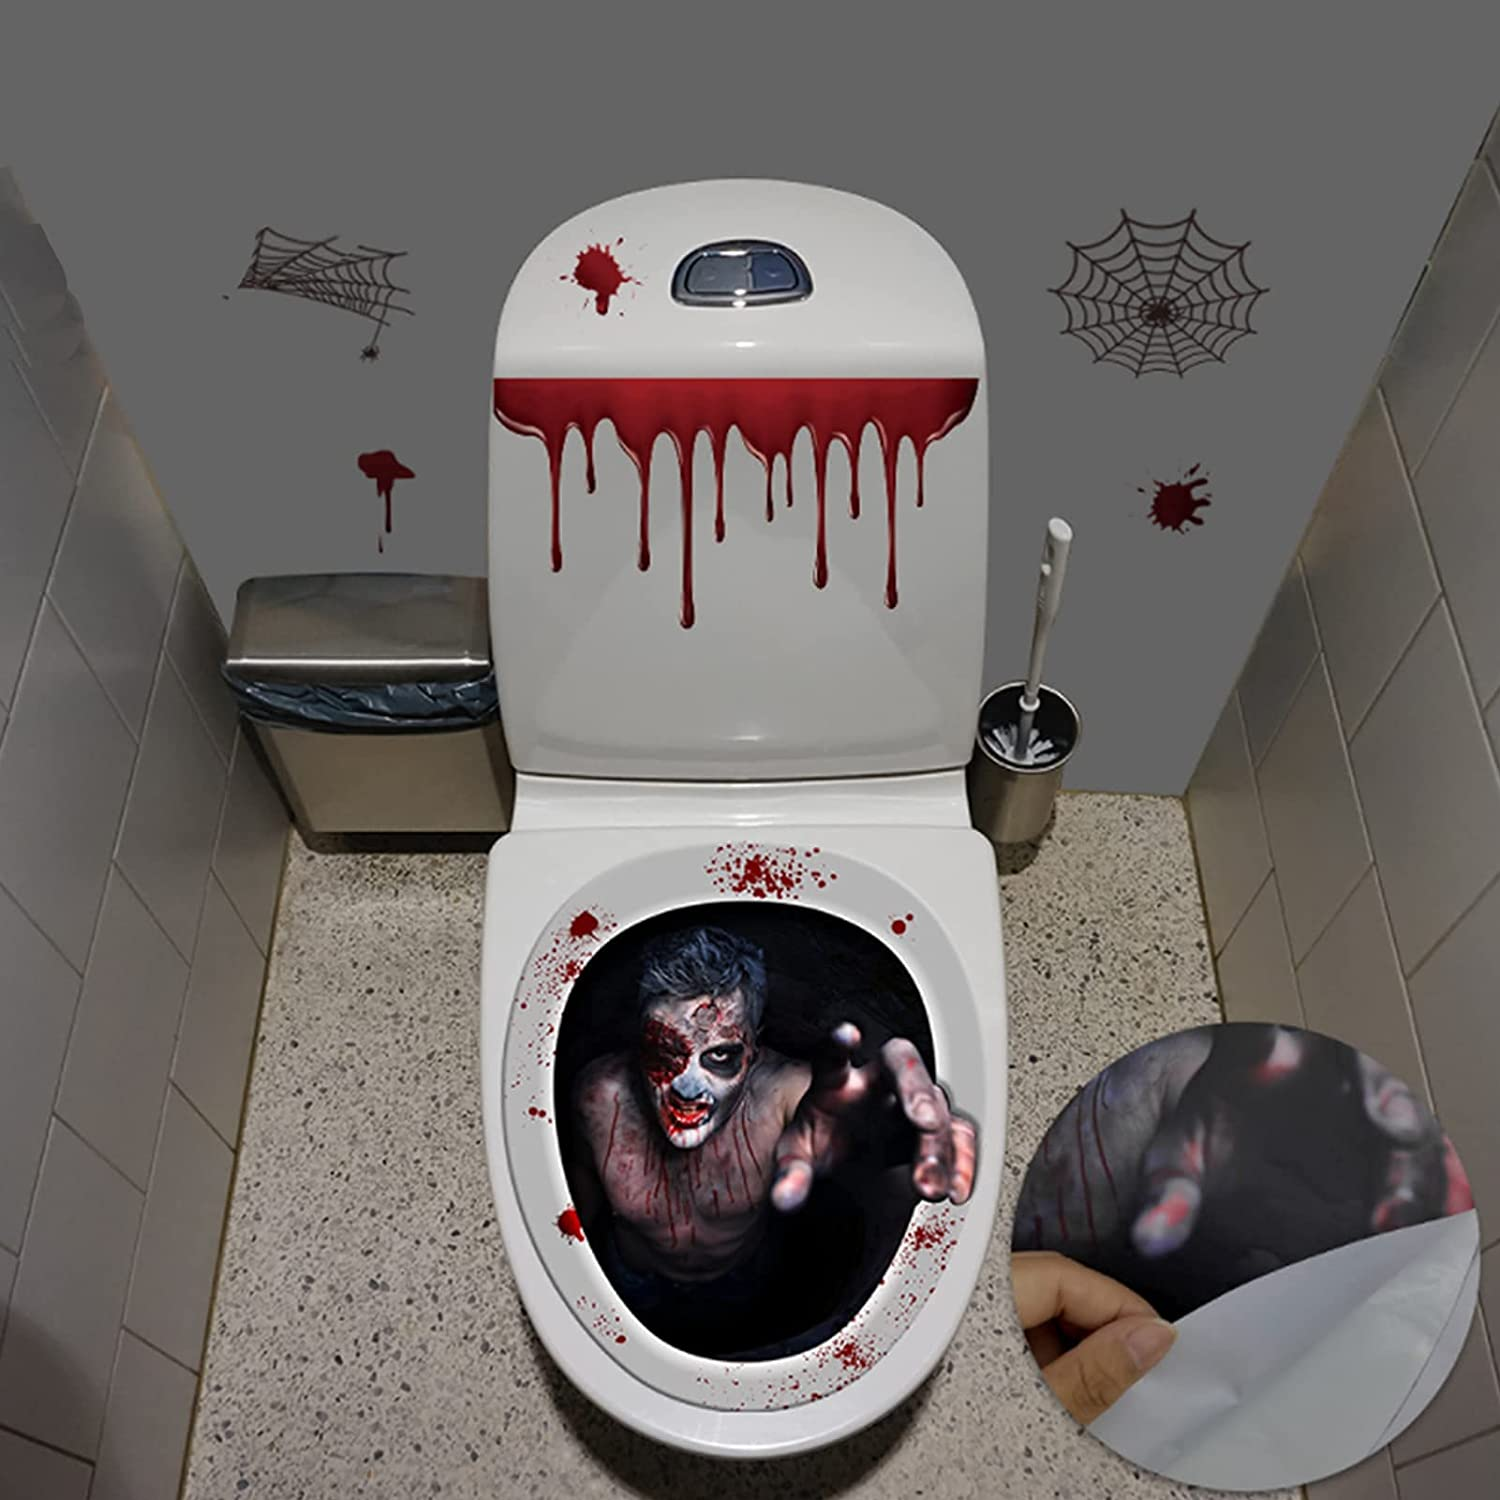 Long-awaited Halloween Toilet Lid All items in the store Decals Stickers Decorations Scary C